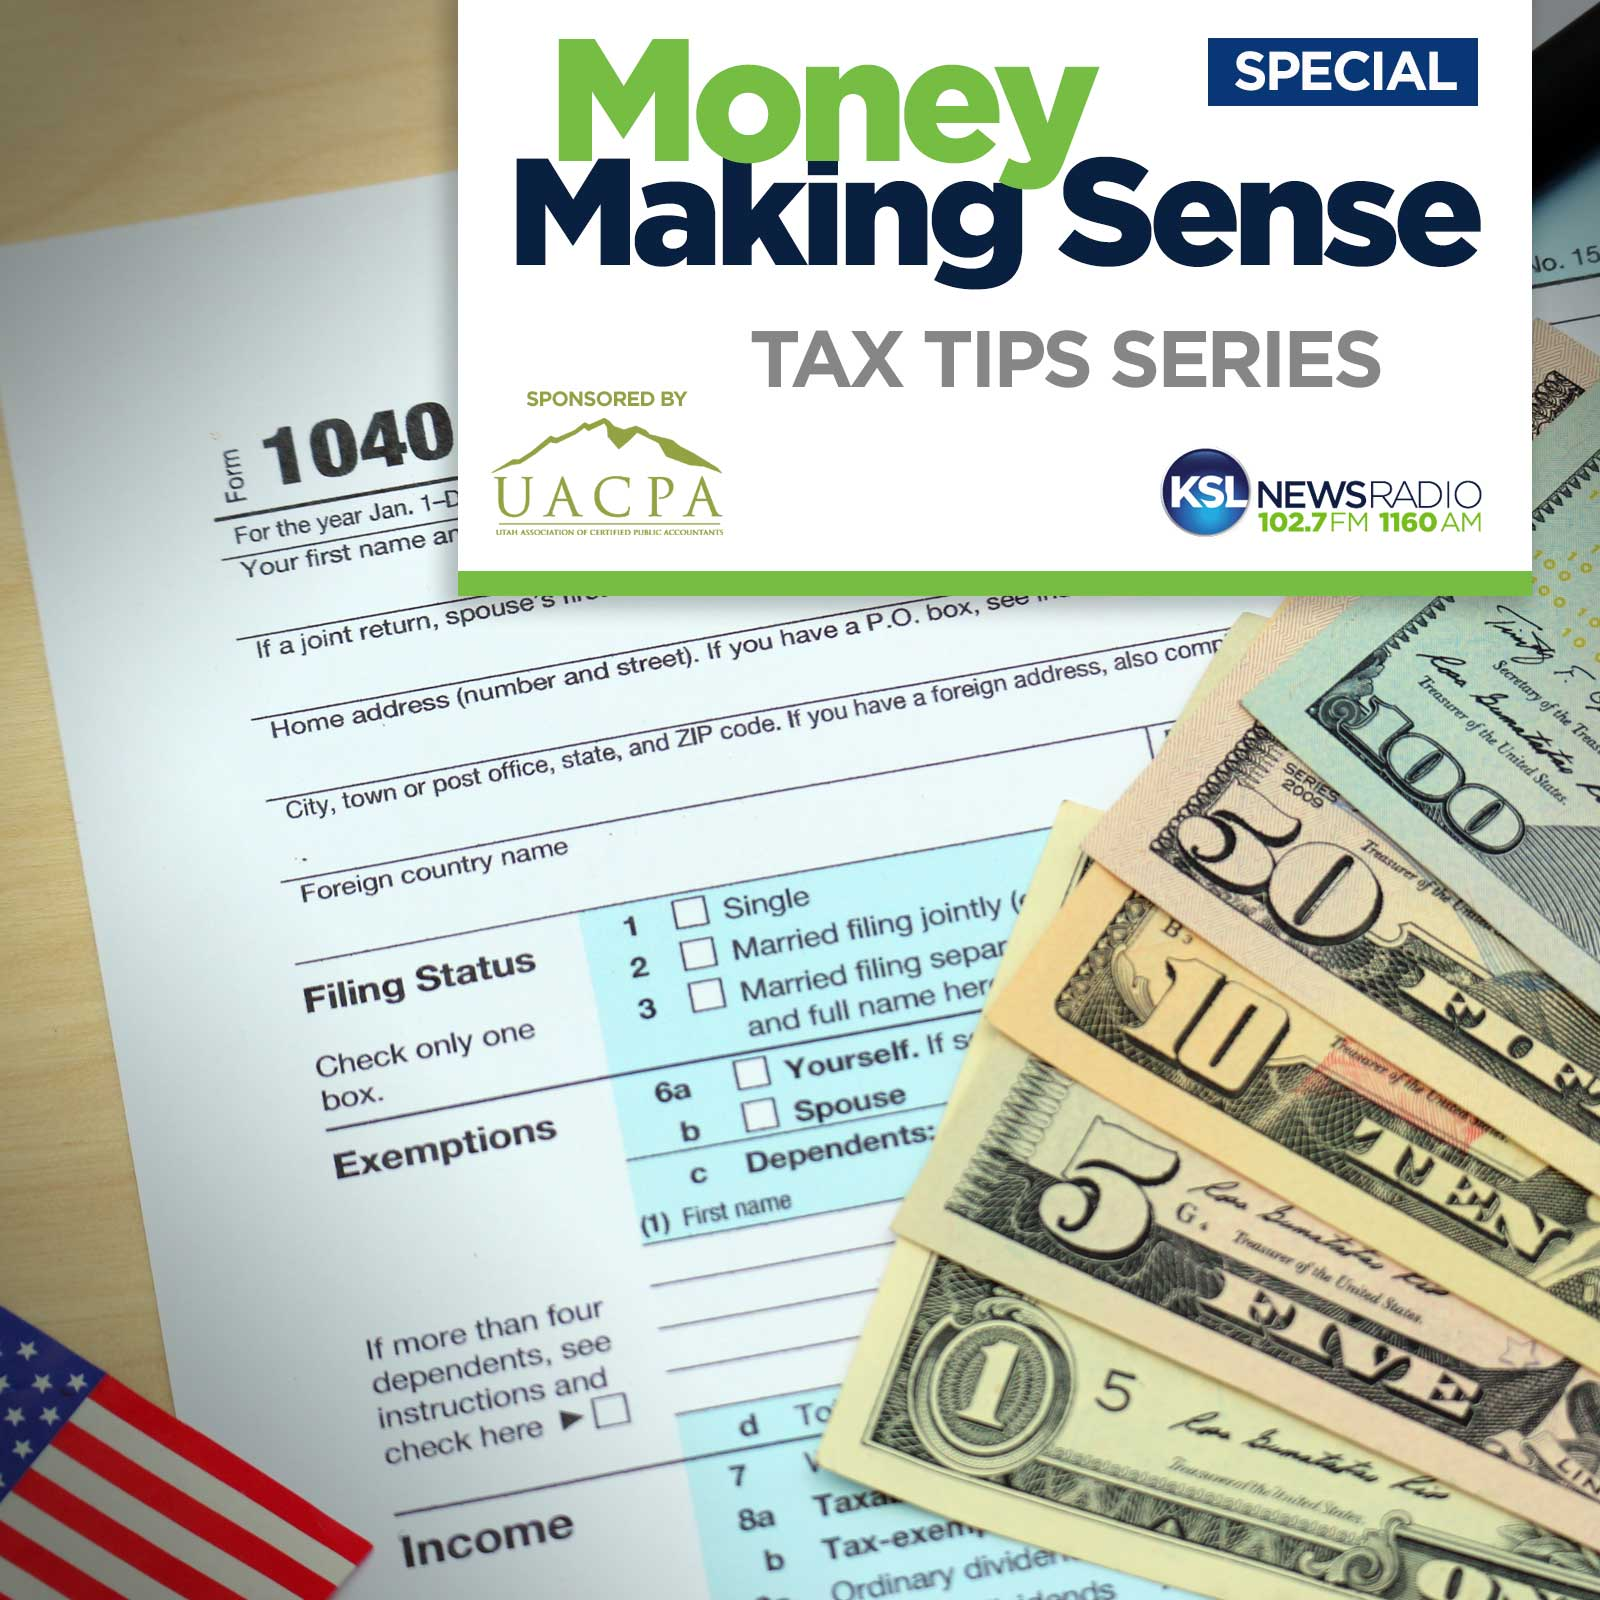 Artwork for Tax Tip #6, Why the Affordable Care Act and Your Taxes Could Drive You to Drink